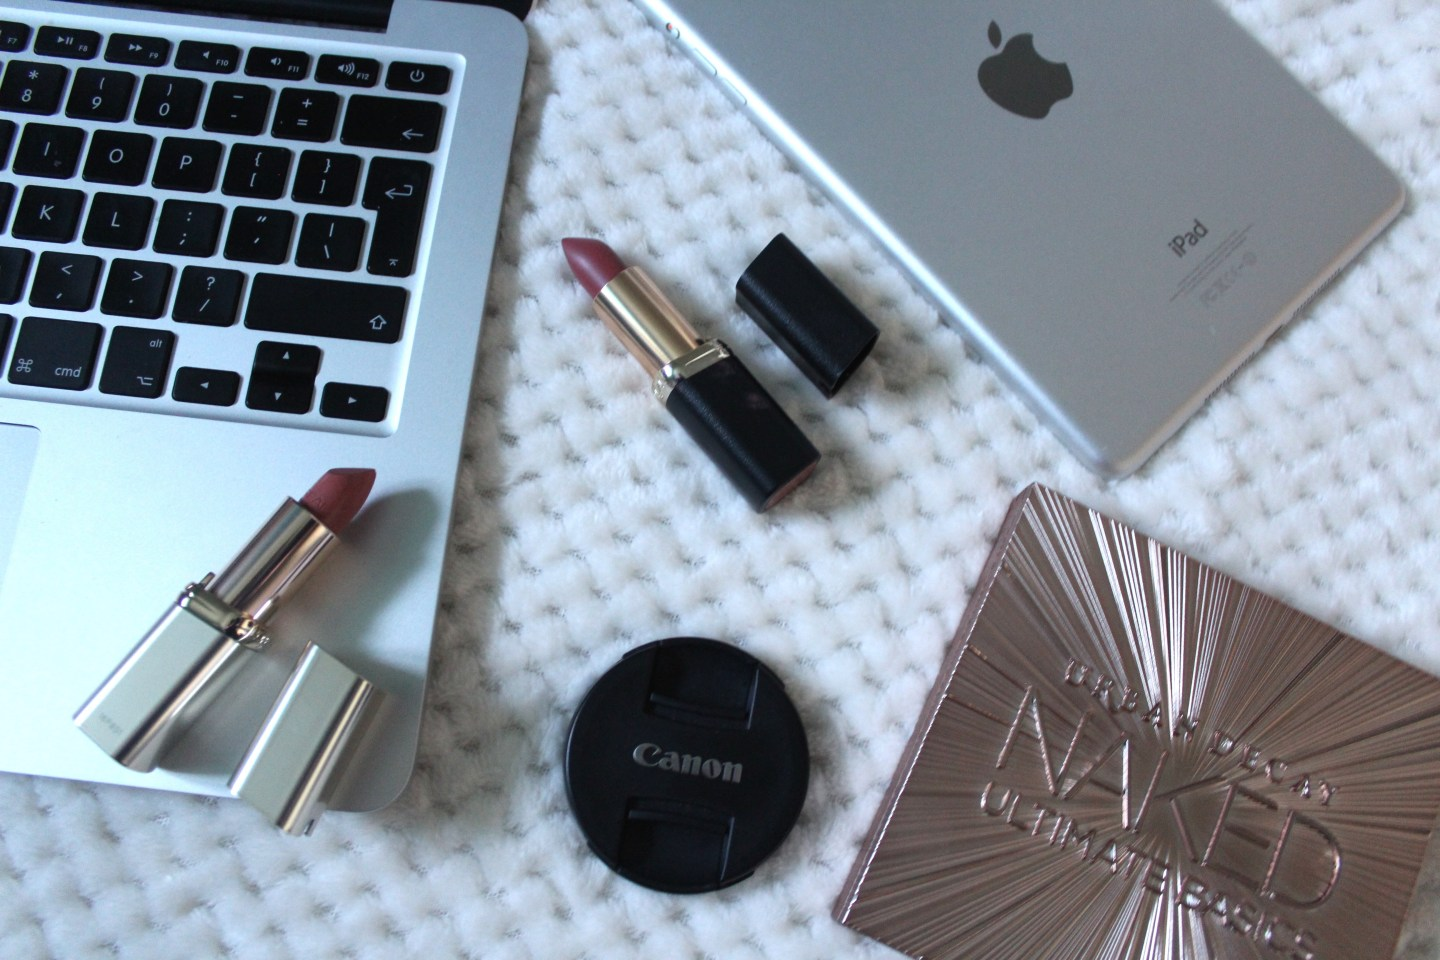 A photo of a macbook, ipad mini and some makeup